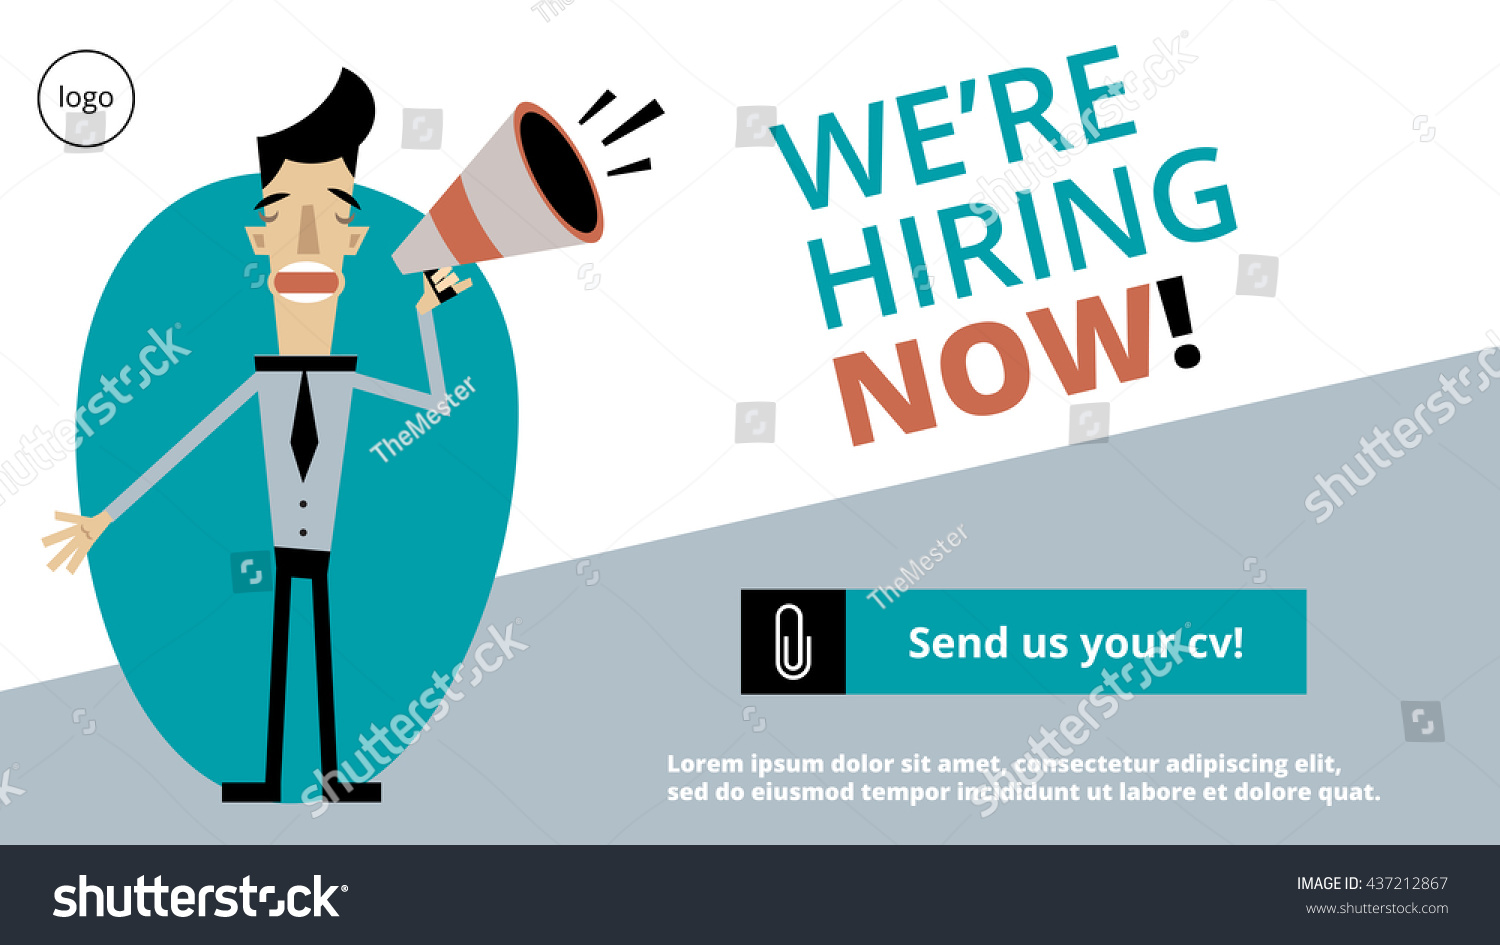 were hiring now sign landing page stock vector 437212867